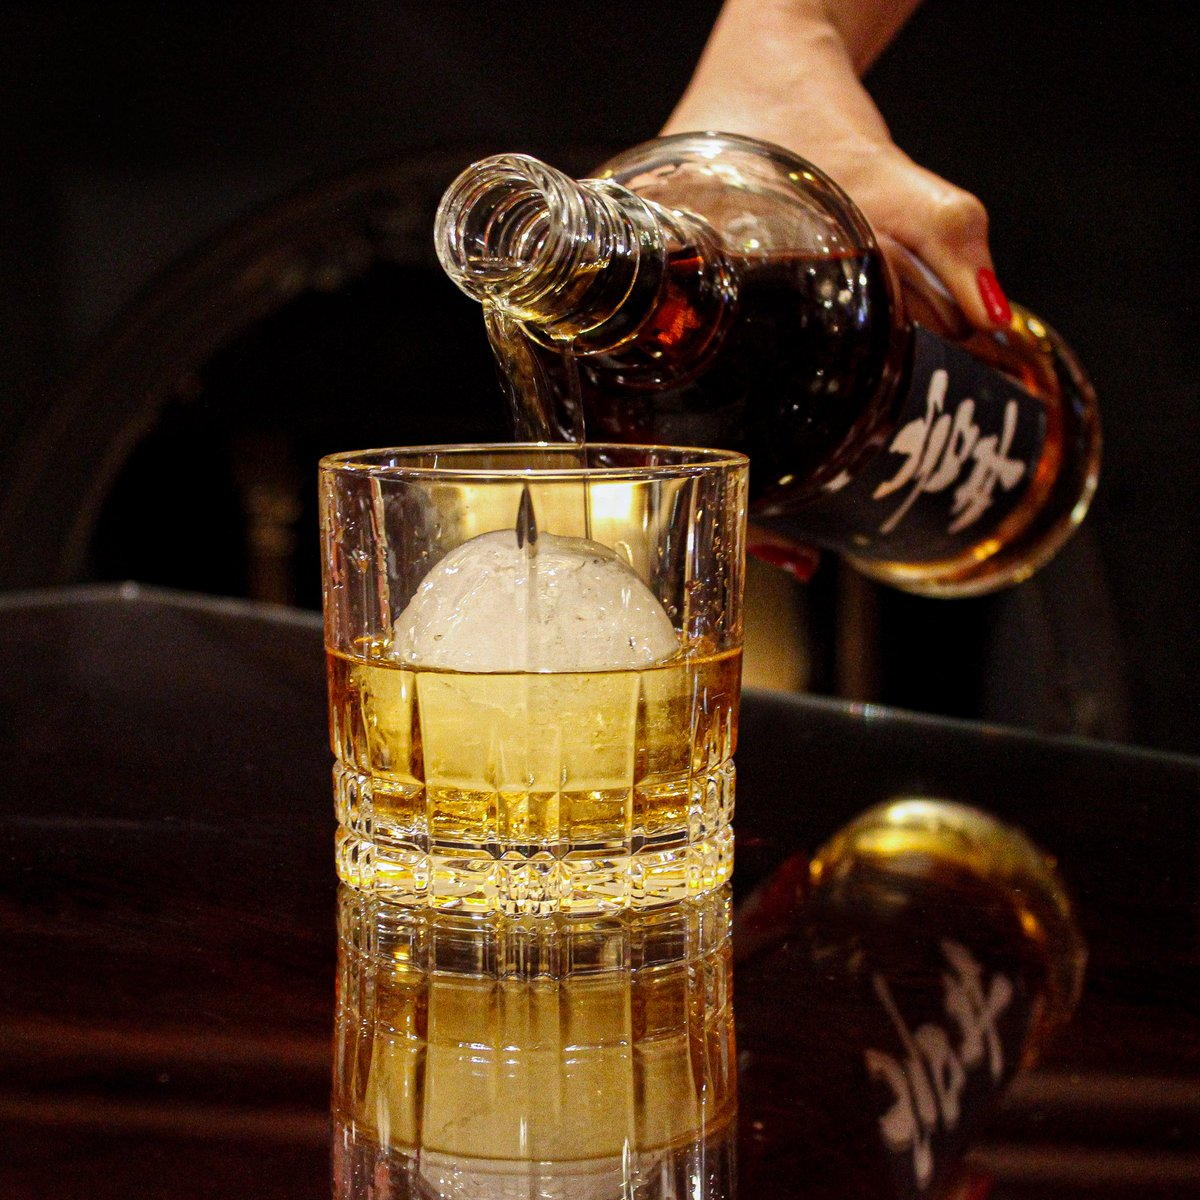 Savor the flavor of fine Japanese whiskeys paired perfectly by the talented Sommelier Mario Appiani with an exquisite 4-course menu including Foie Gras and Beef Tenderloin at the Library Lounge & Cigar Bar on January 21st, 2020 starting at 8pm. https://t.co/y6qSrHXv28